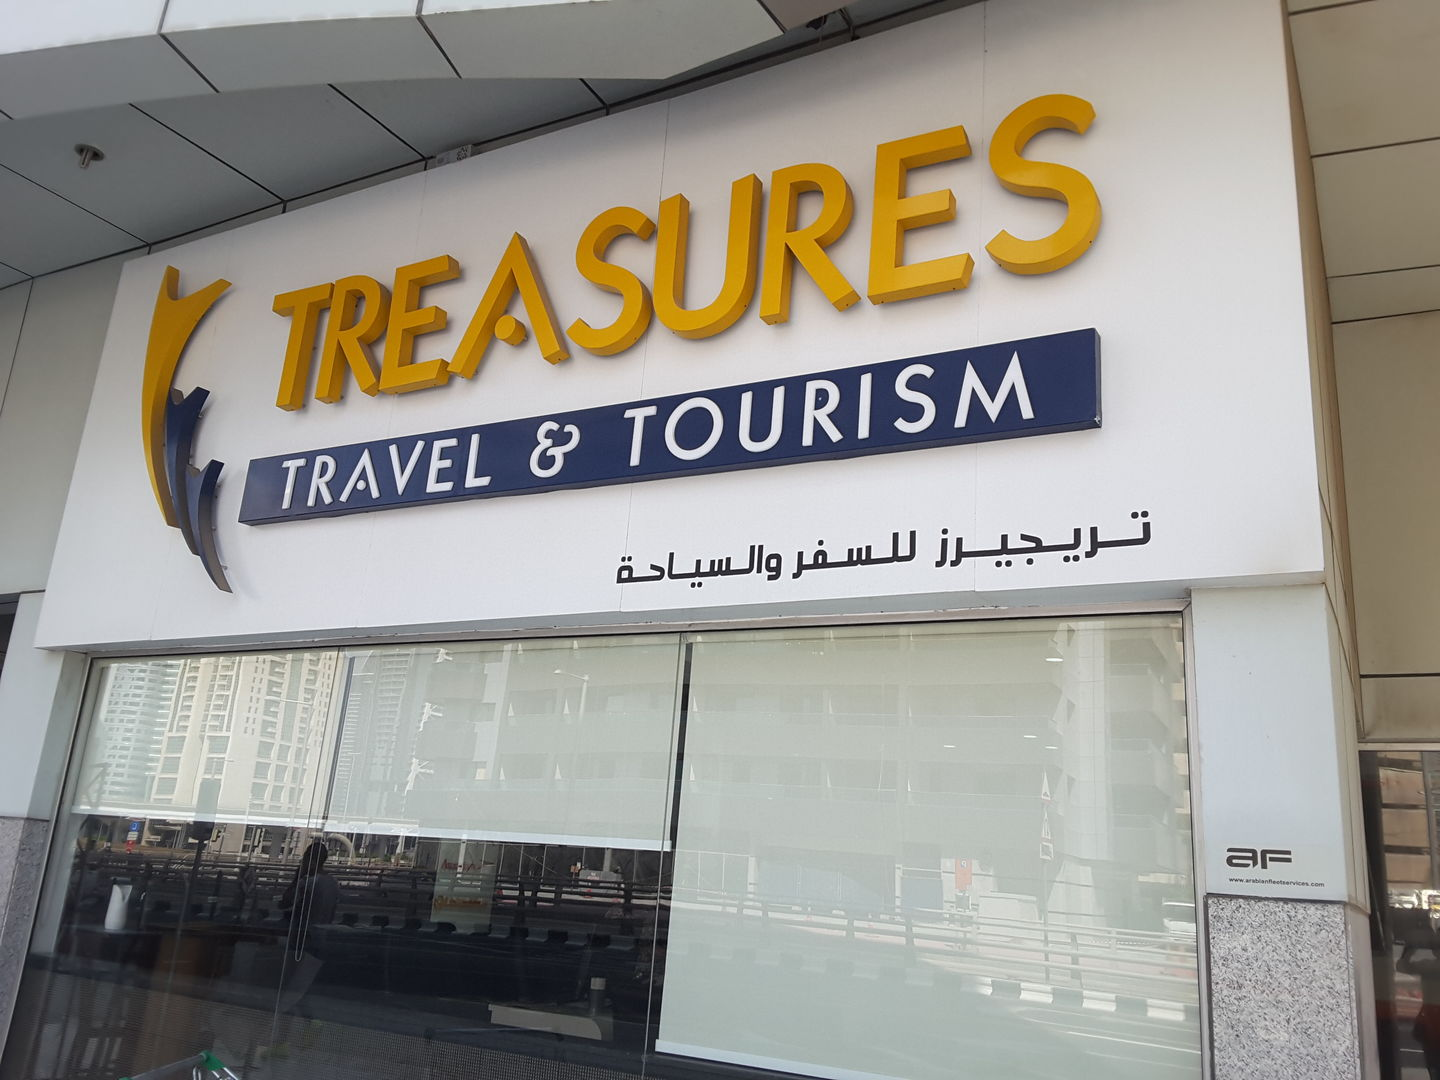 HiDubai-business-treasures-travel-tourism-hotels-tourism-travel-ticketing-agencies-dubai-marina-marsa-dubai-dubai-2